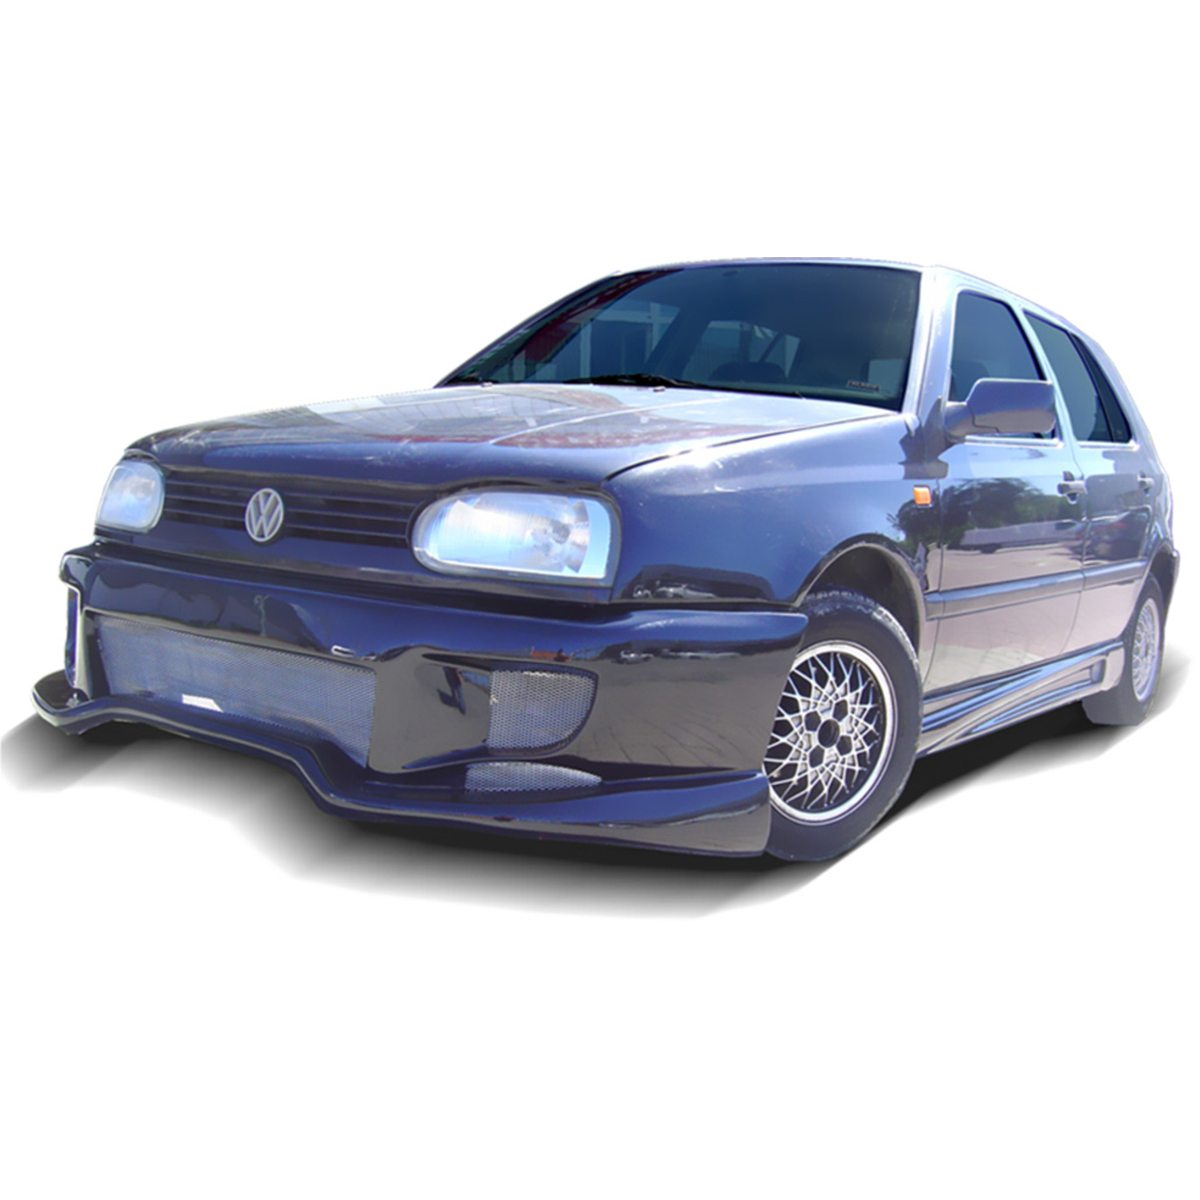 VW-Golf-III-Wind-Frt-PCA144